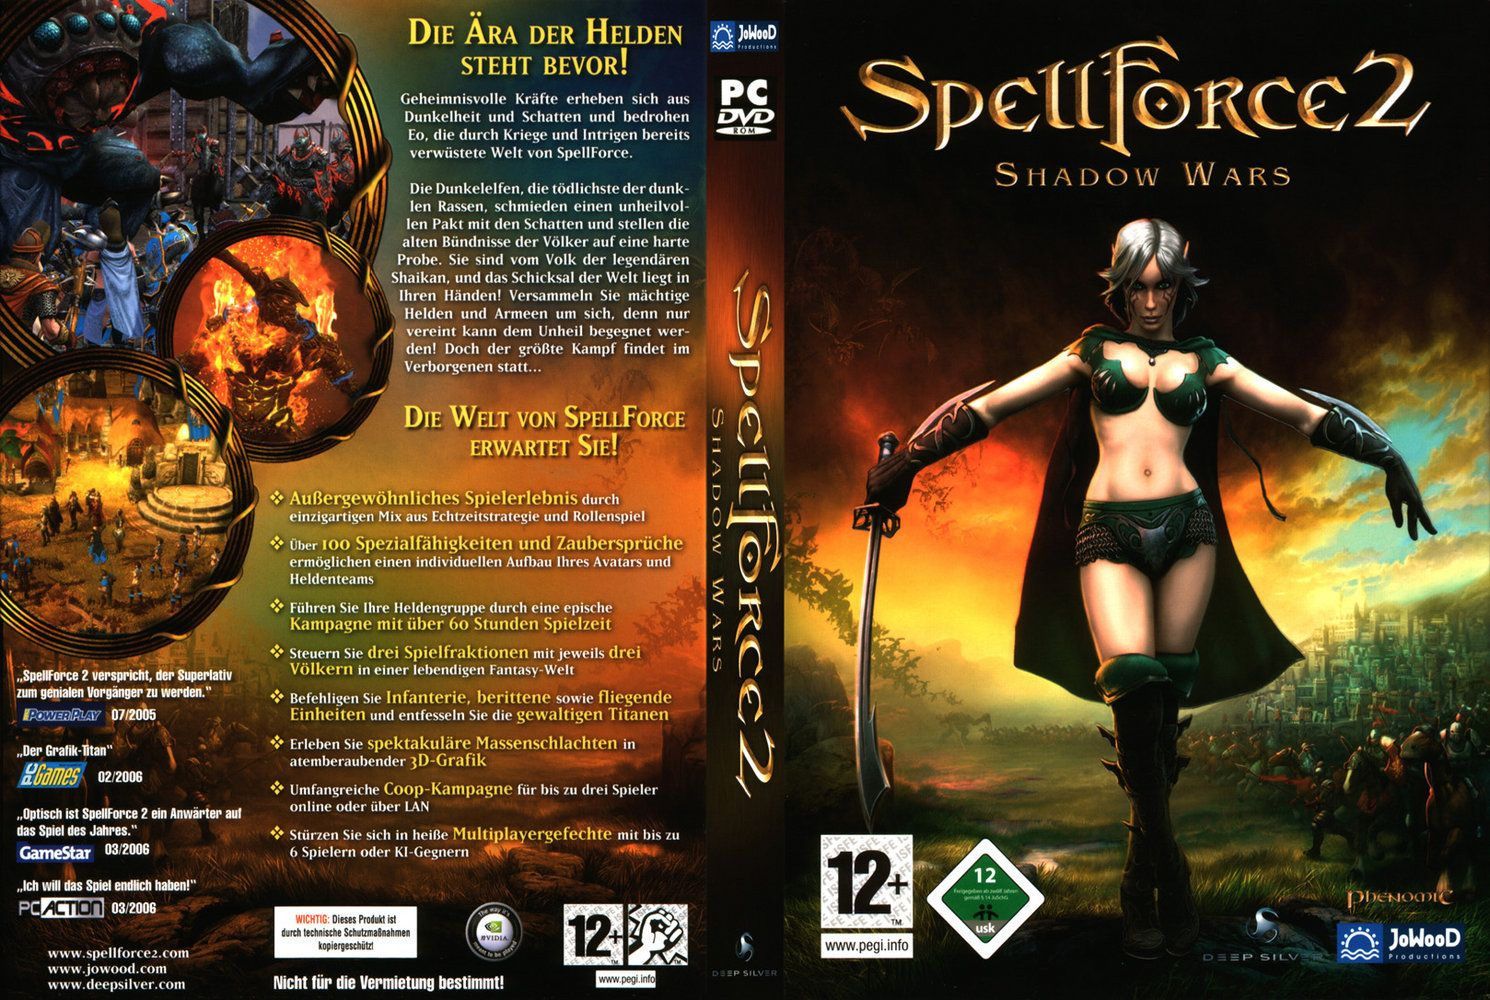 Spellforce 2 nude patch hentai picture